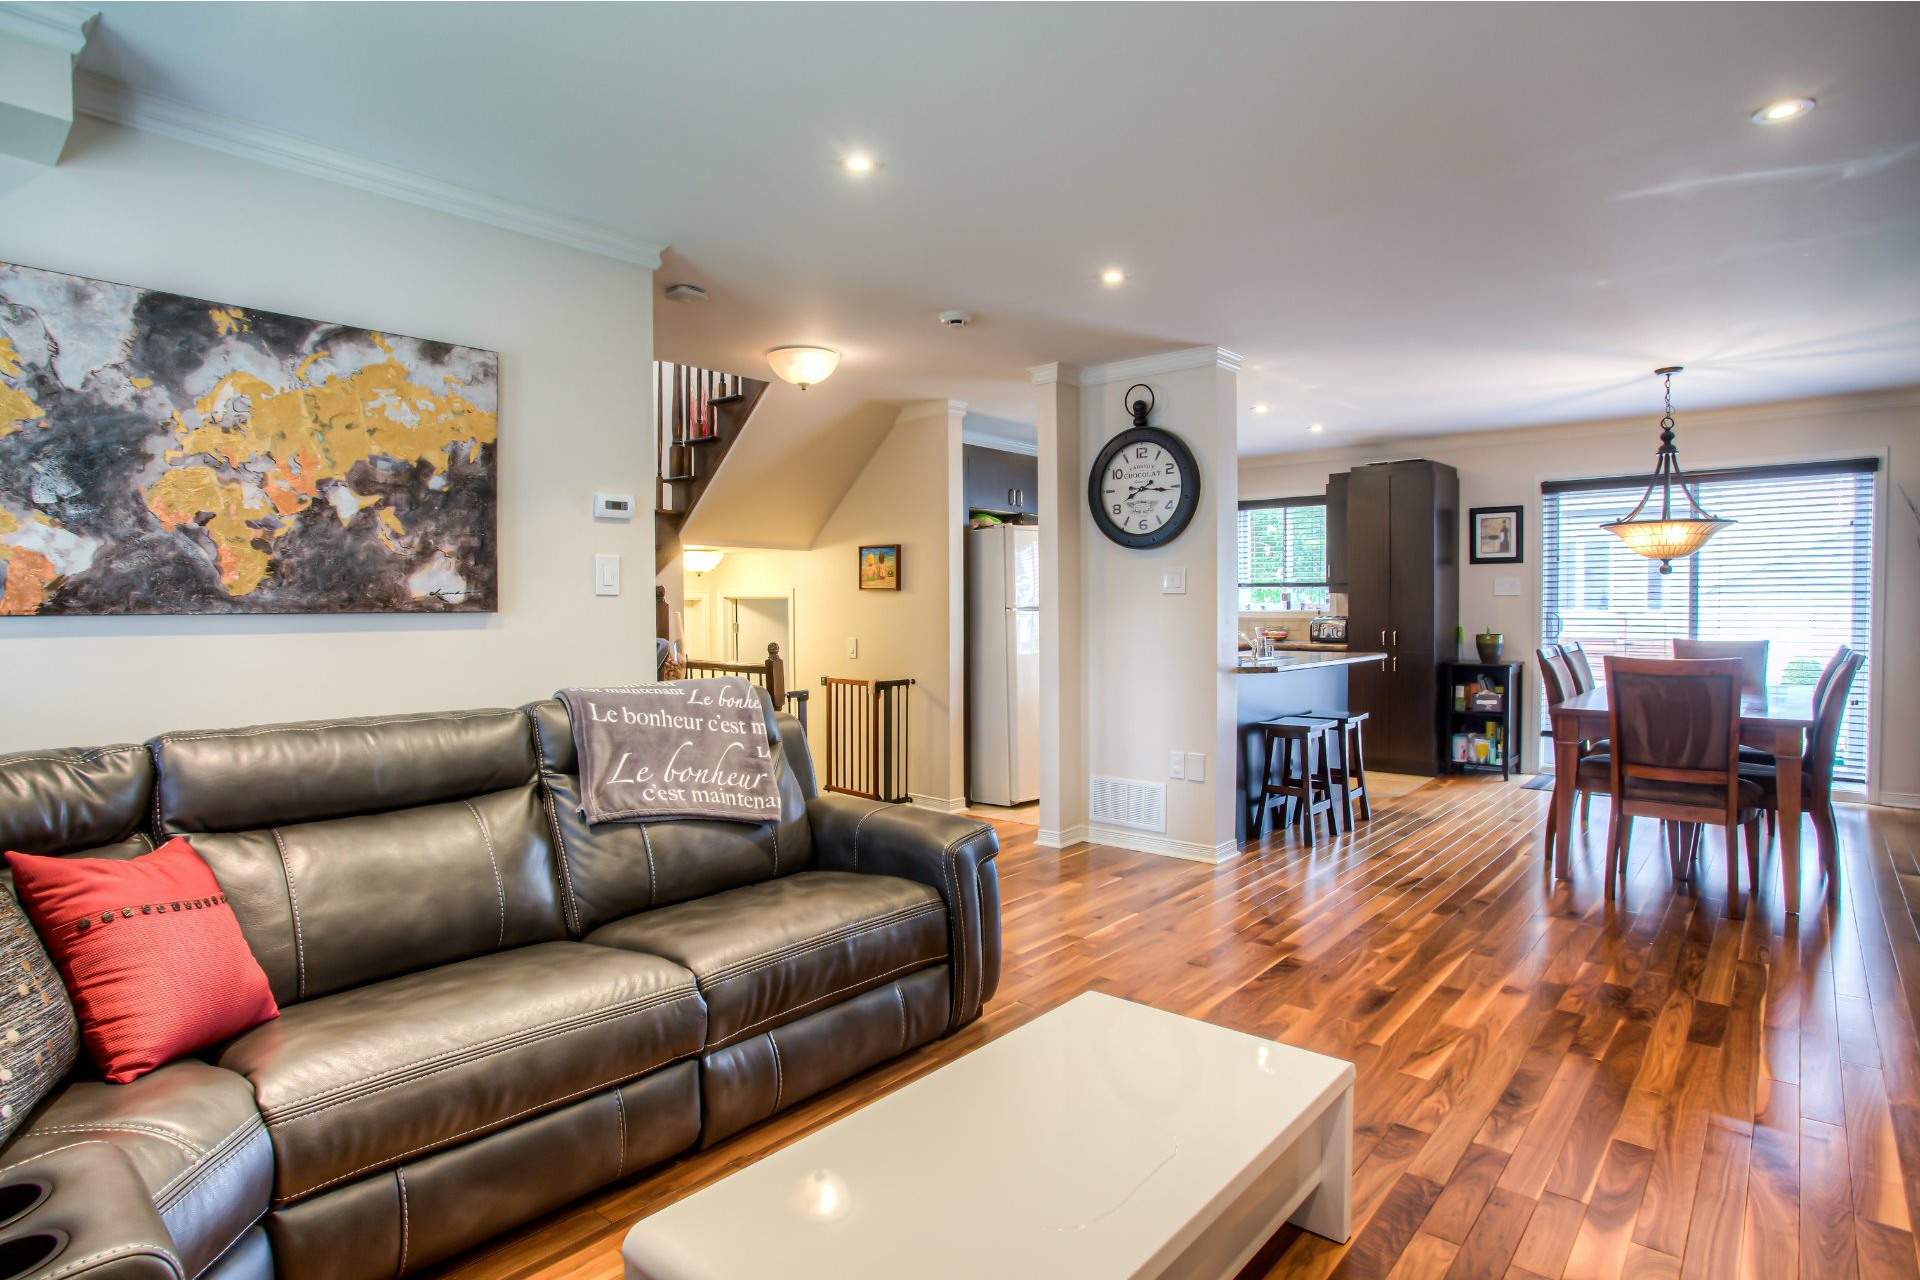 image 6 - House For sale Vaudreuil-Dorion - 9 rooms